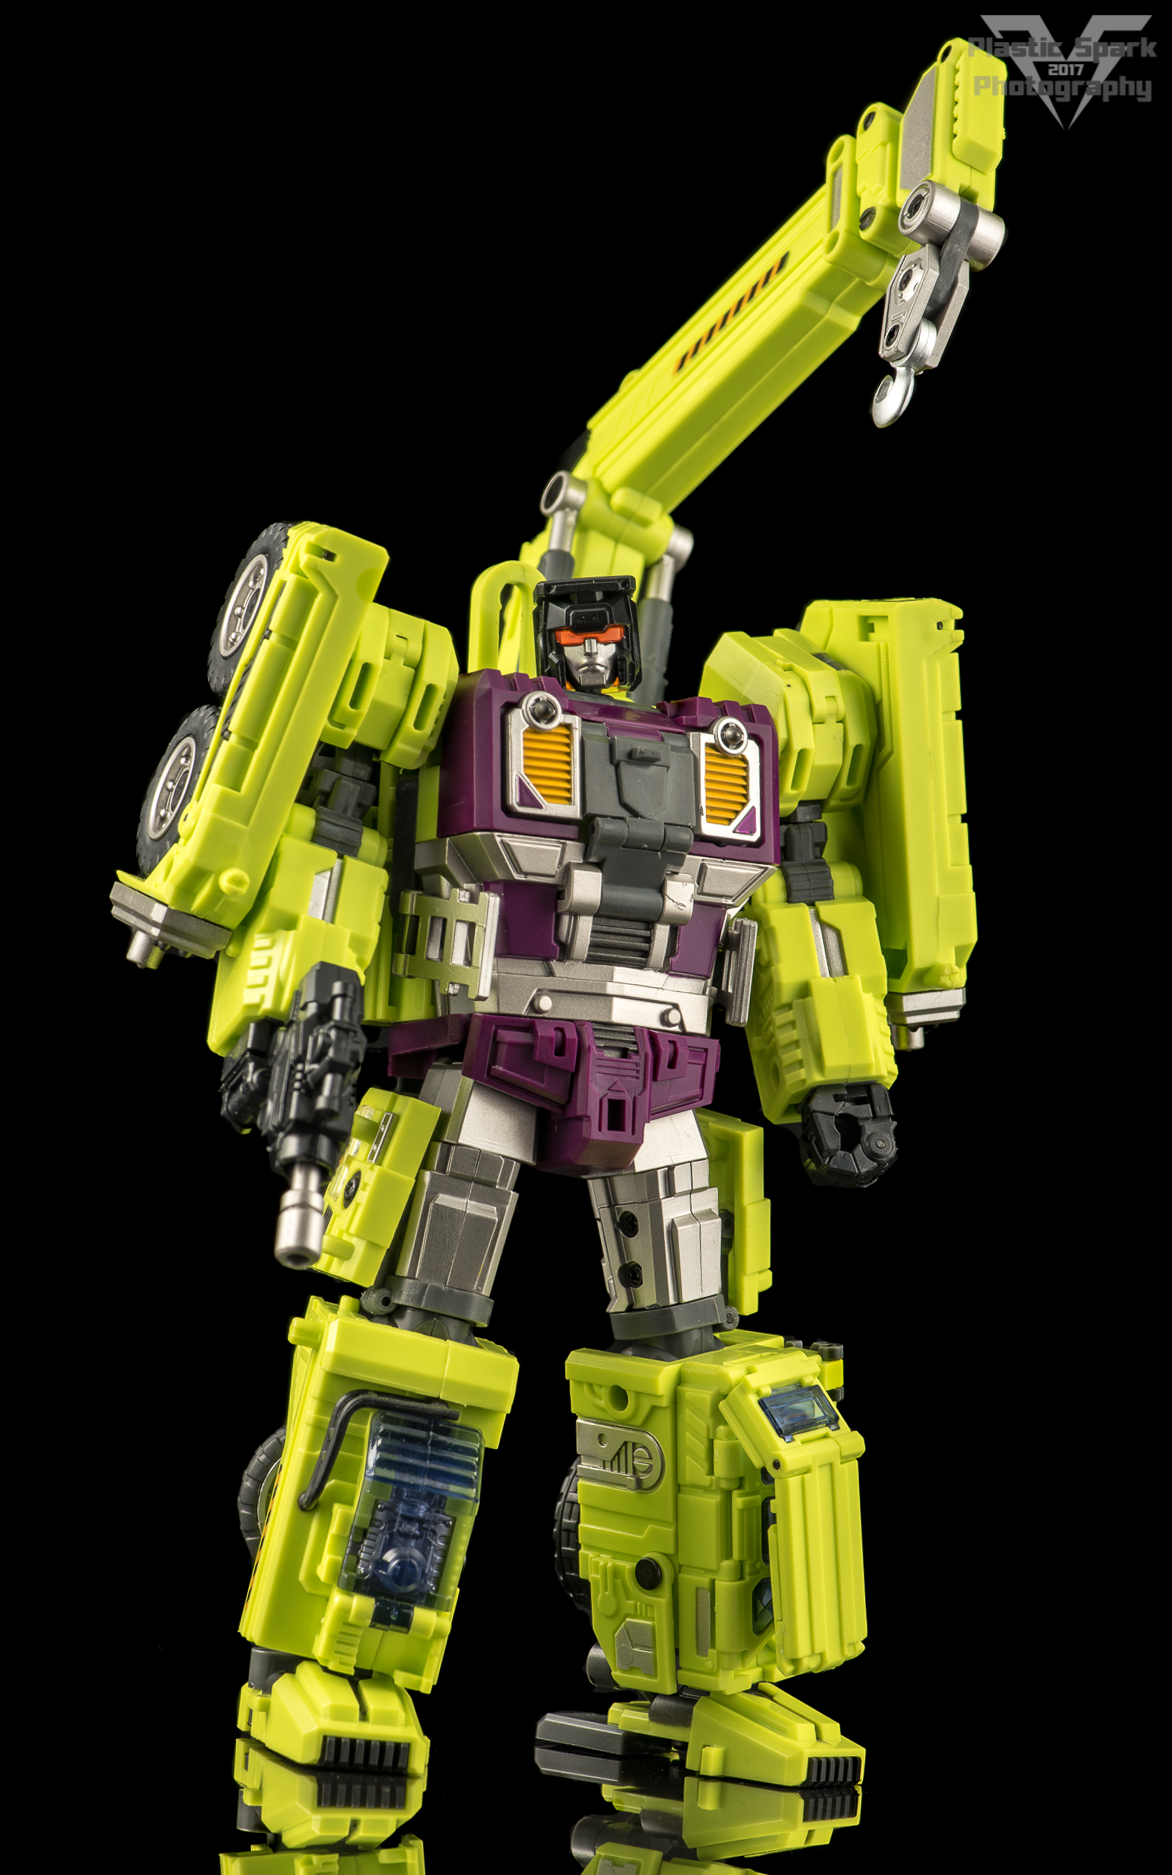 Generation-Toy-Gravity-Builder-(12-of-34).png